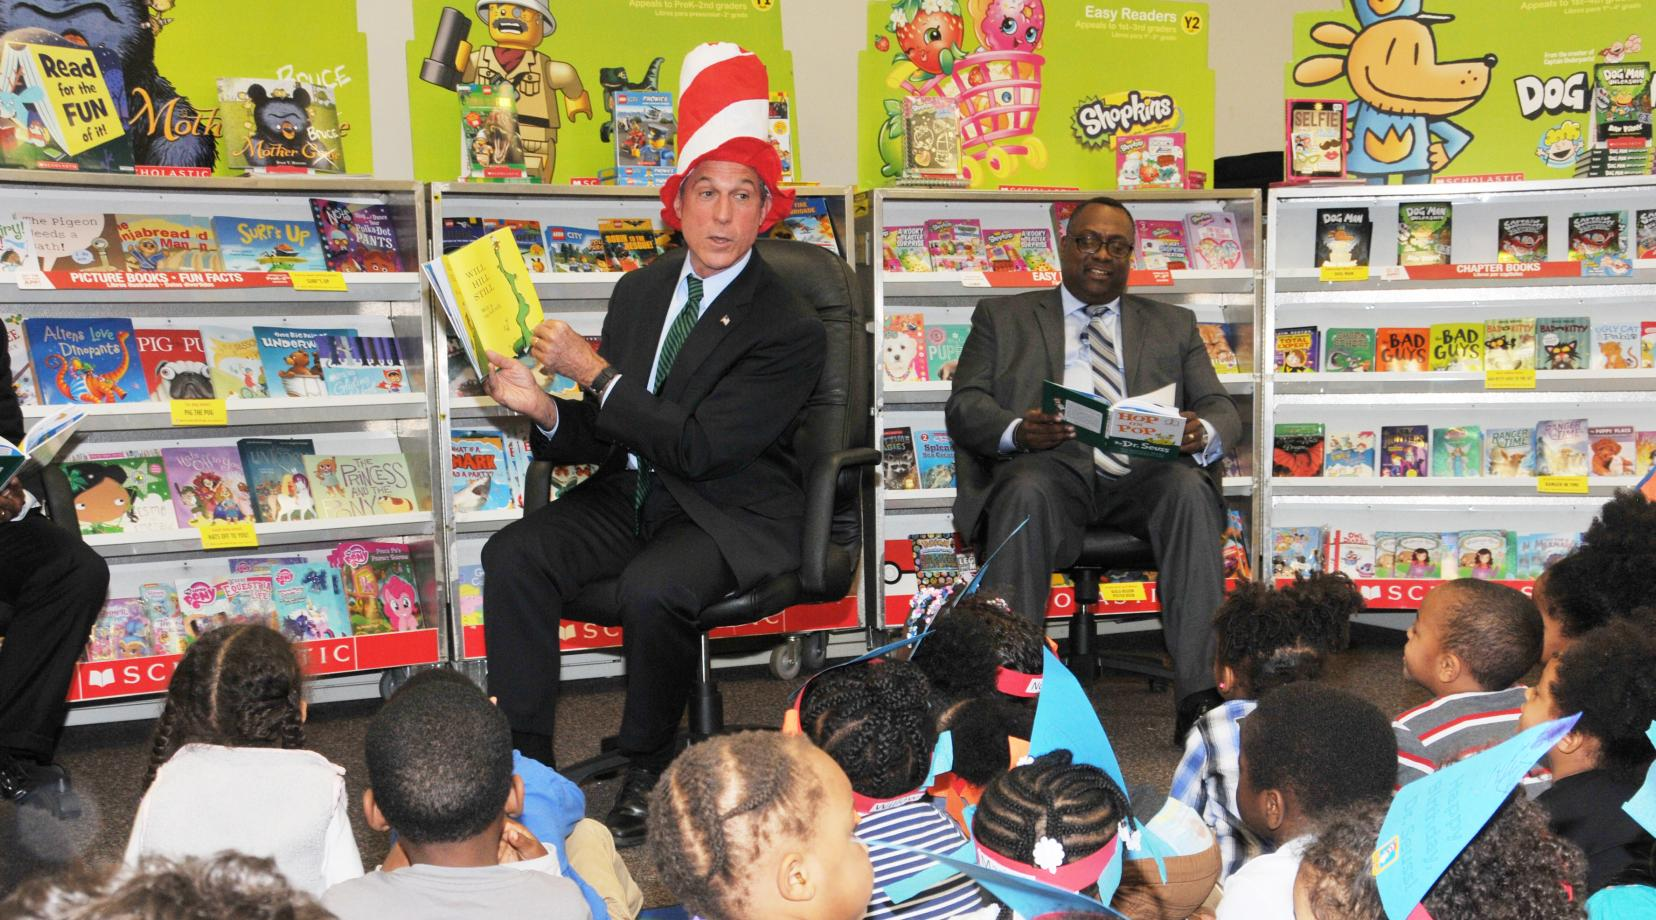 Gov. John Carney reads to the children, while Tyrone James of the United Way of Del. also reads along.